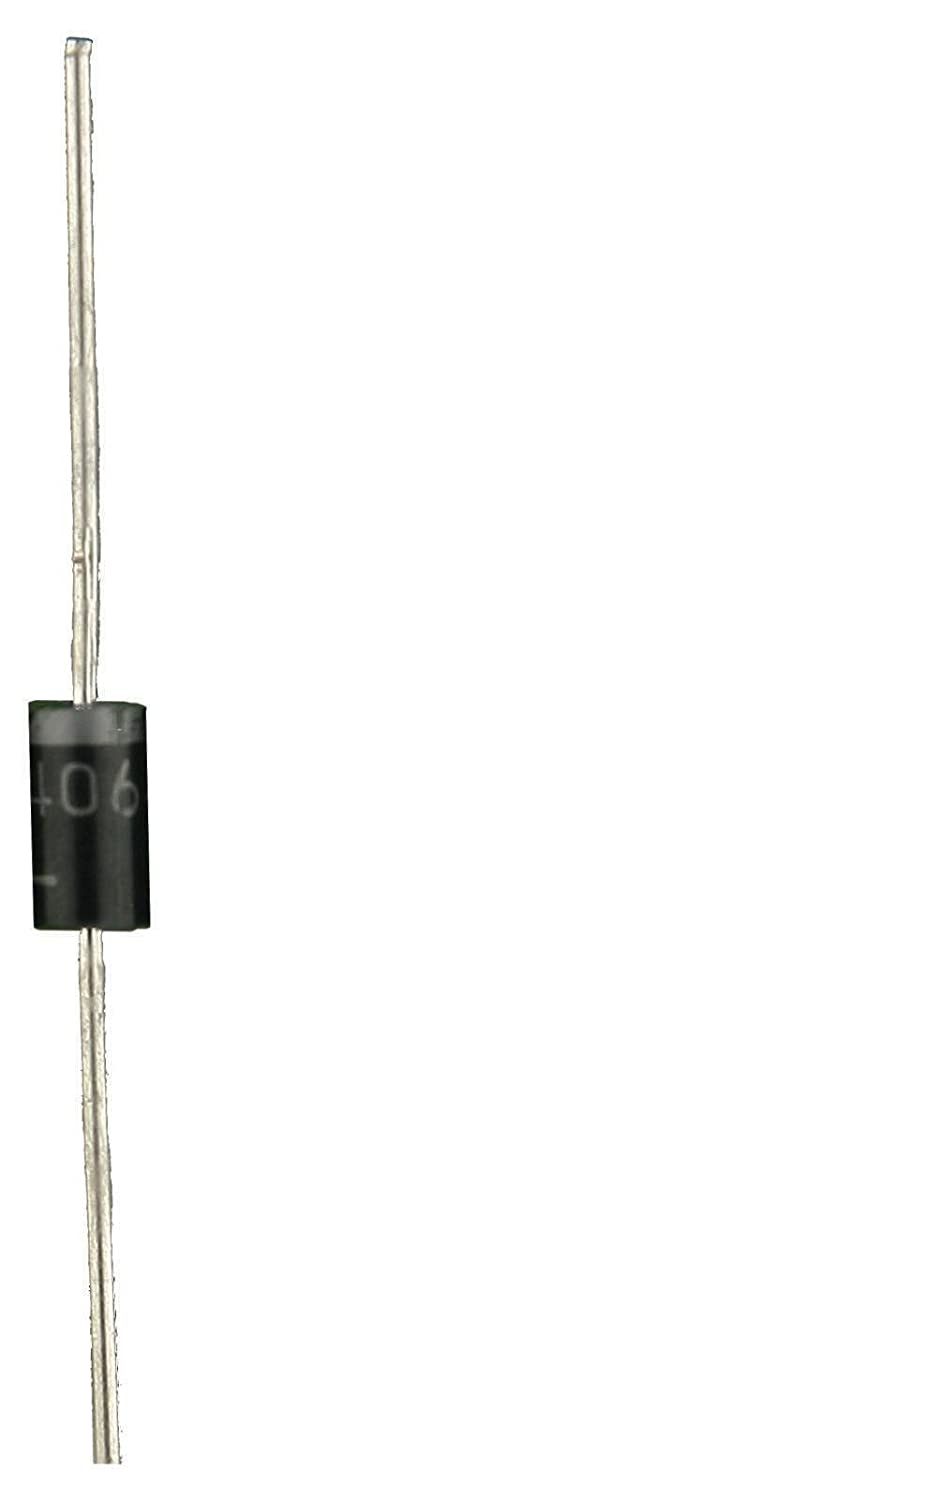 Install Bay Diodes 3 Amp 20 Pack- D3